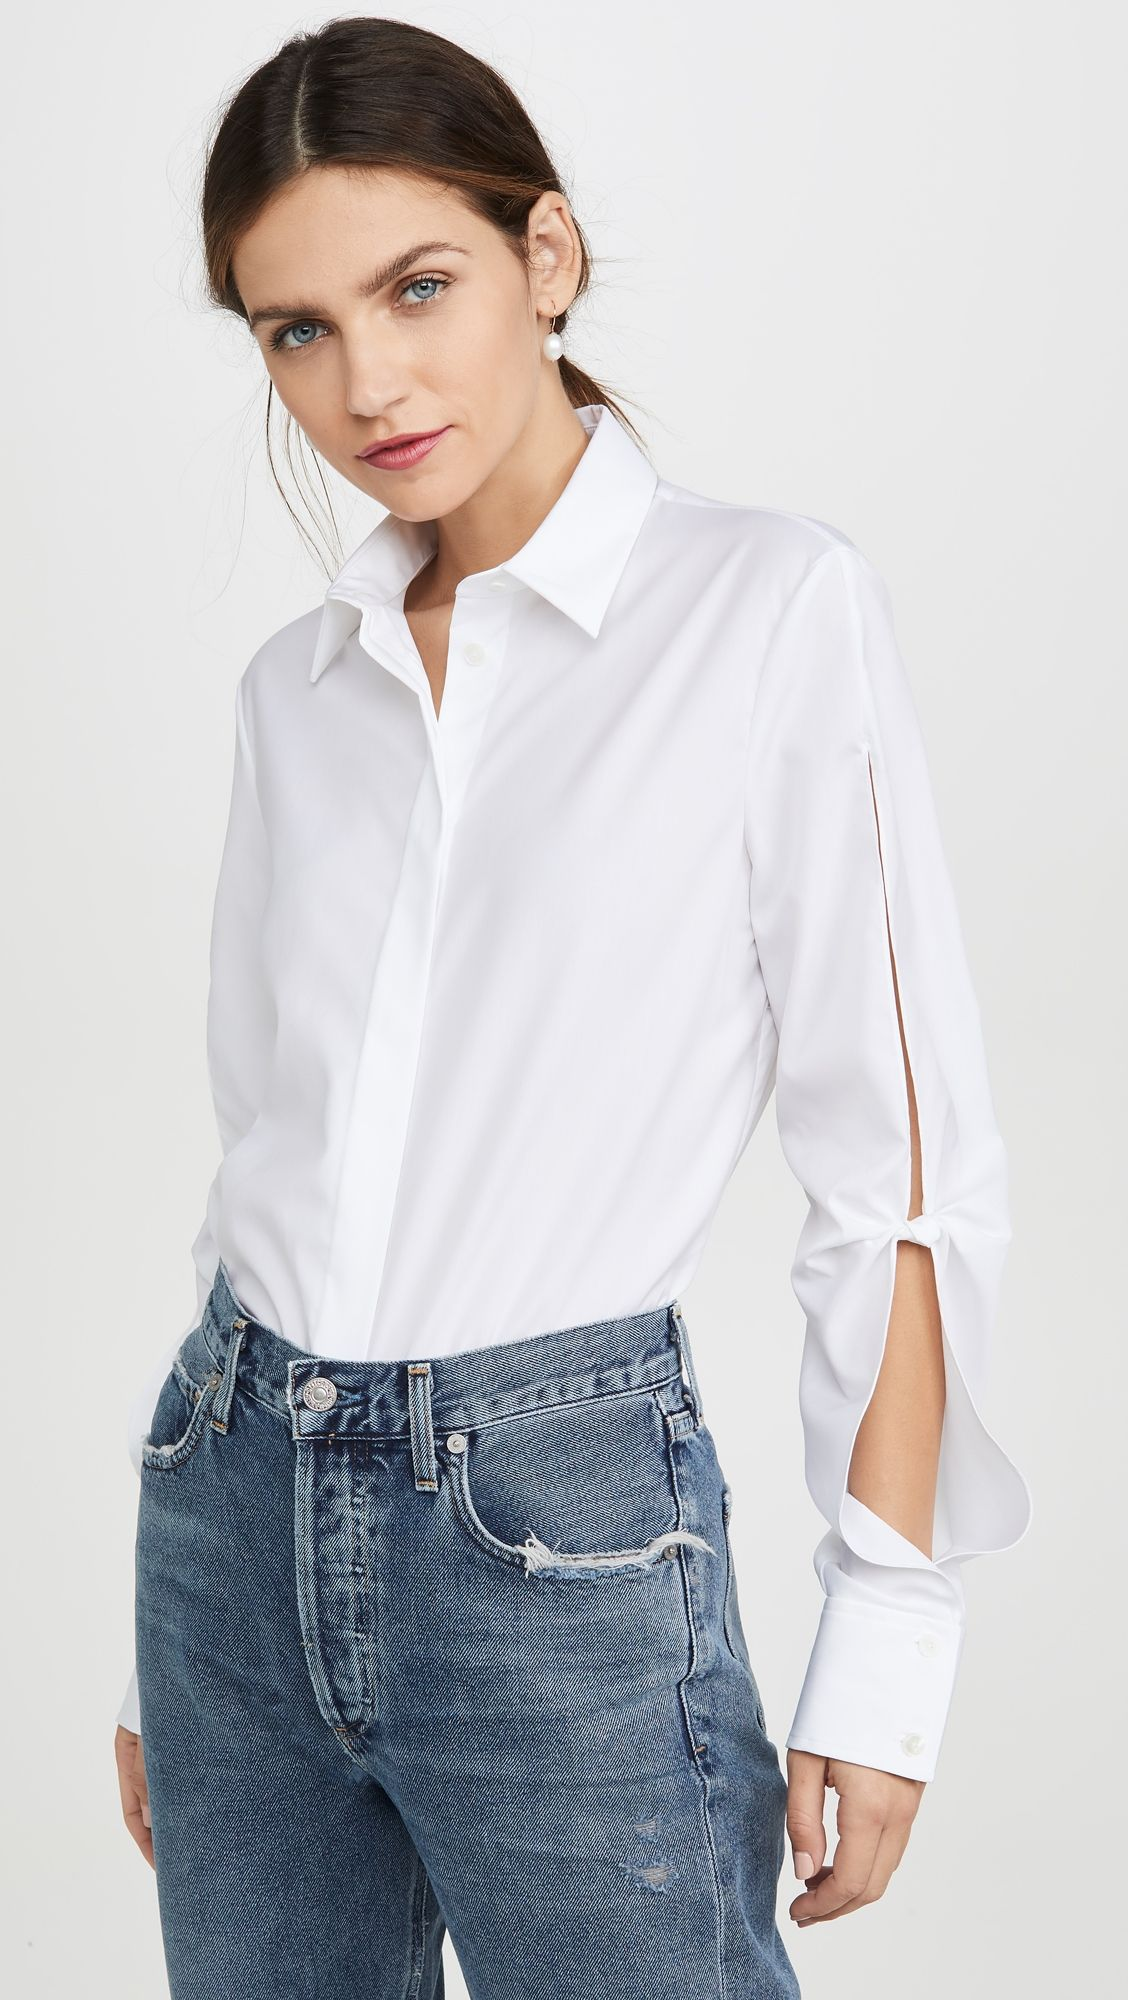 Dion Lee Hinge Knot Shirt Knotted shirt, Dion lee, Fashion